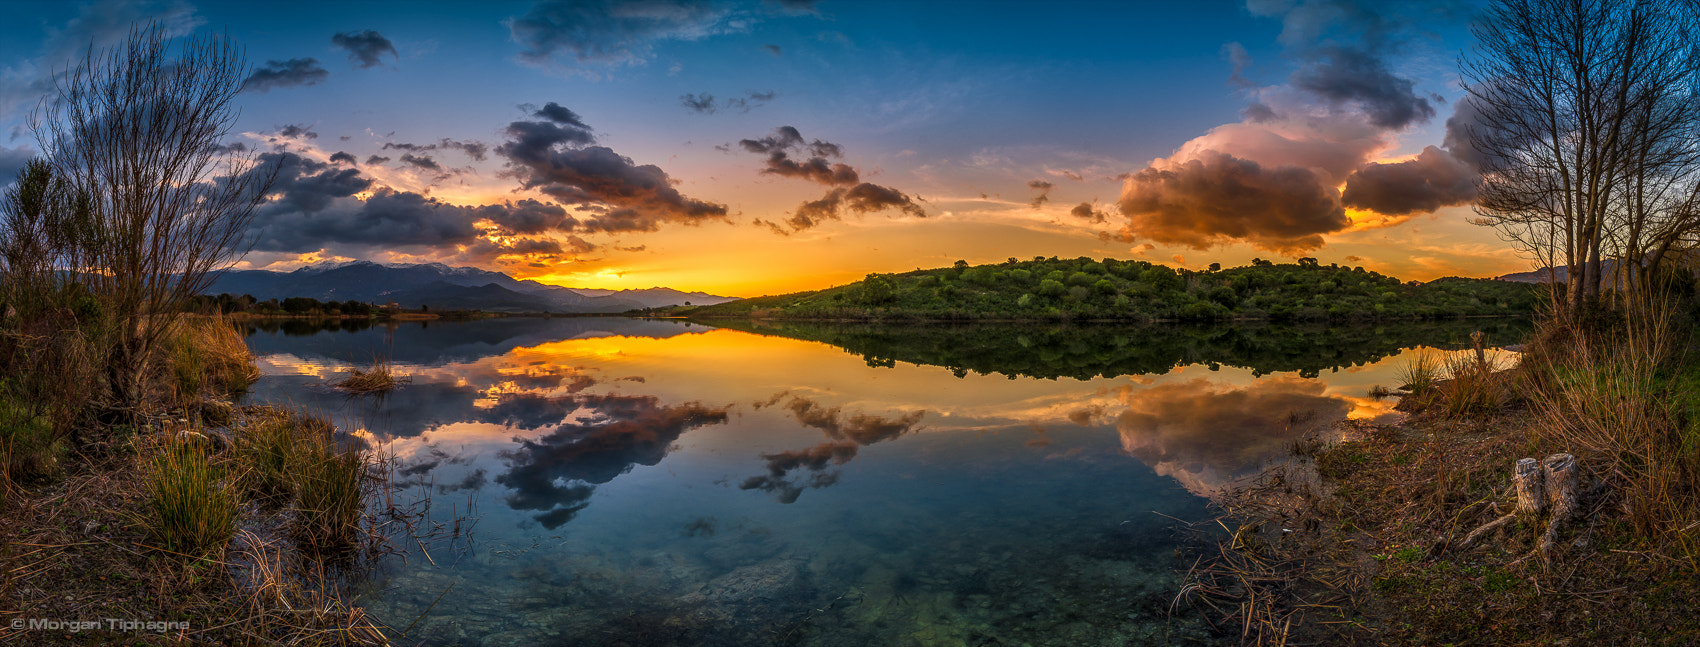 Photograph Panorama sunset on the lake by Morgan Tiphagne on 500px